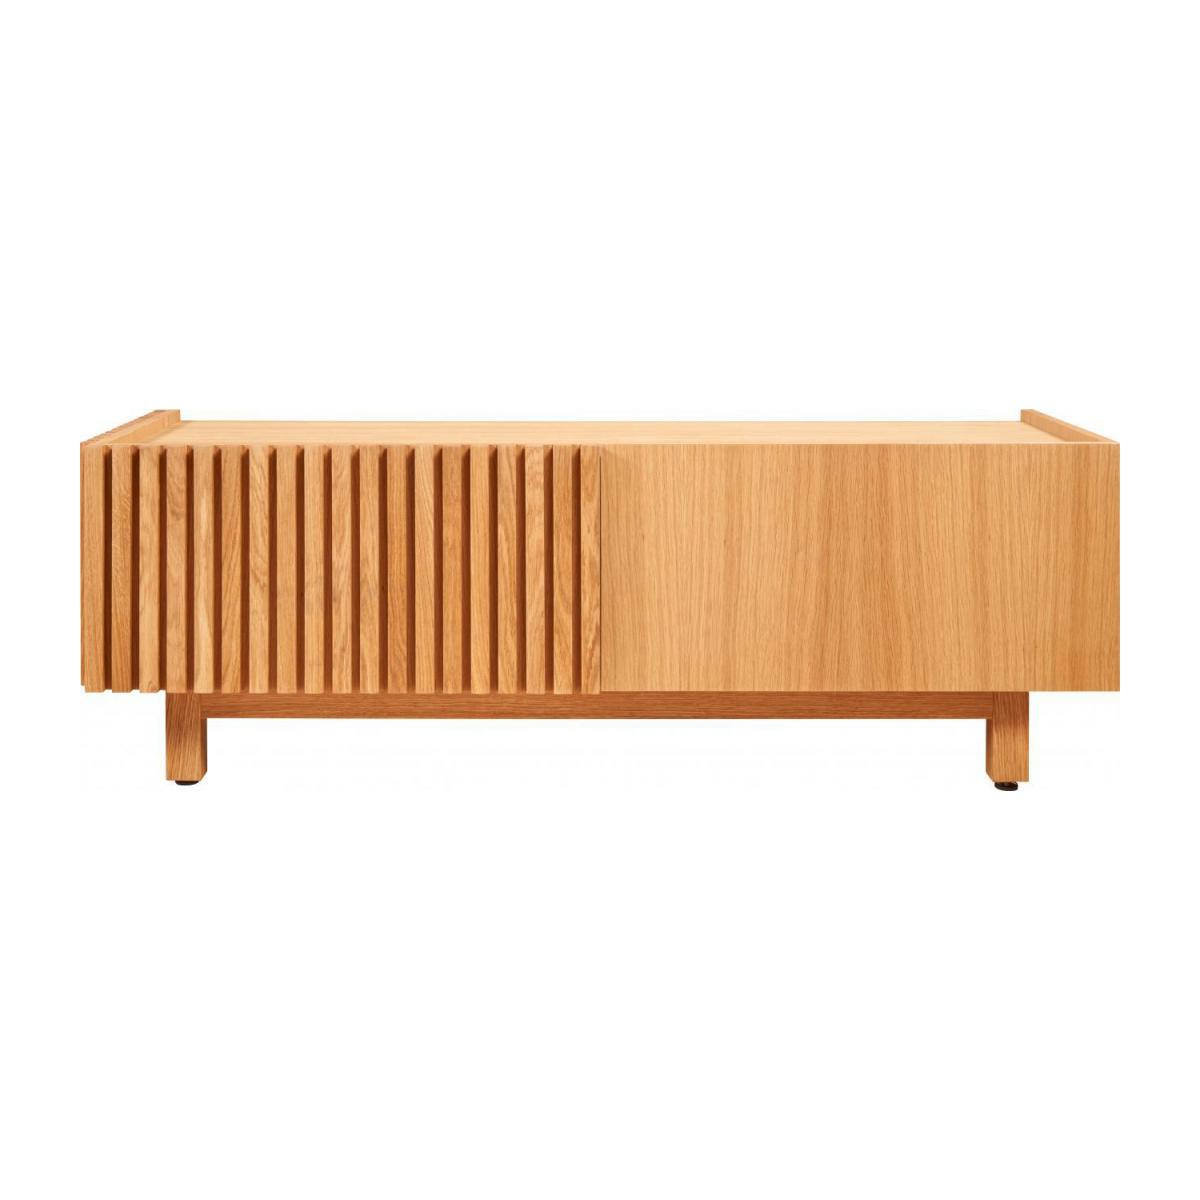 Audio video oak stand n°3